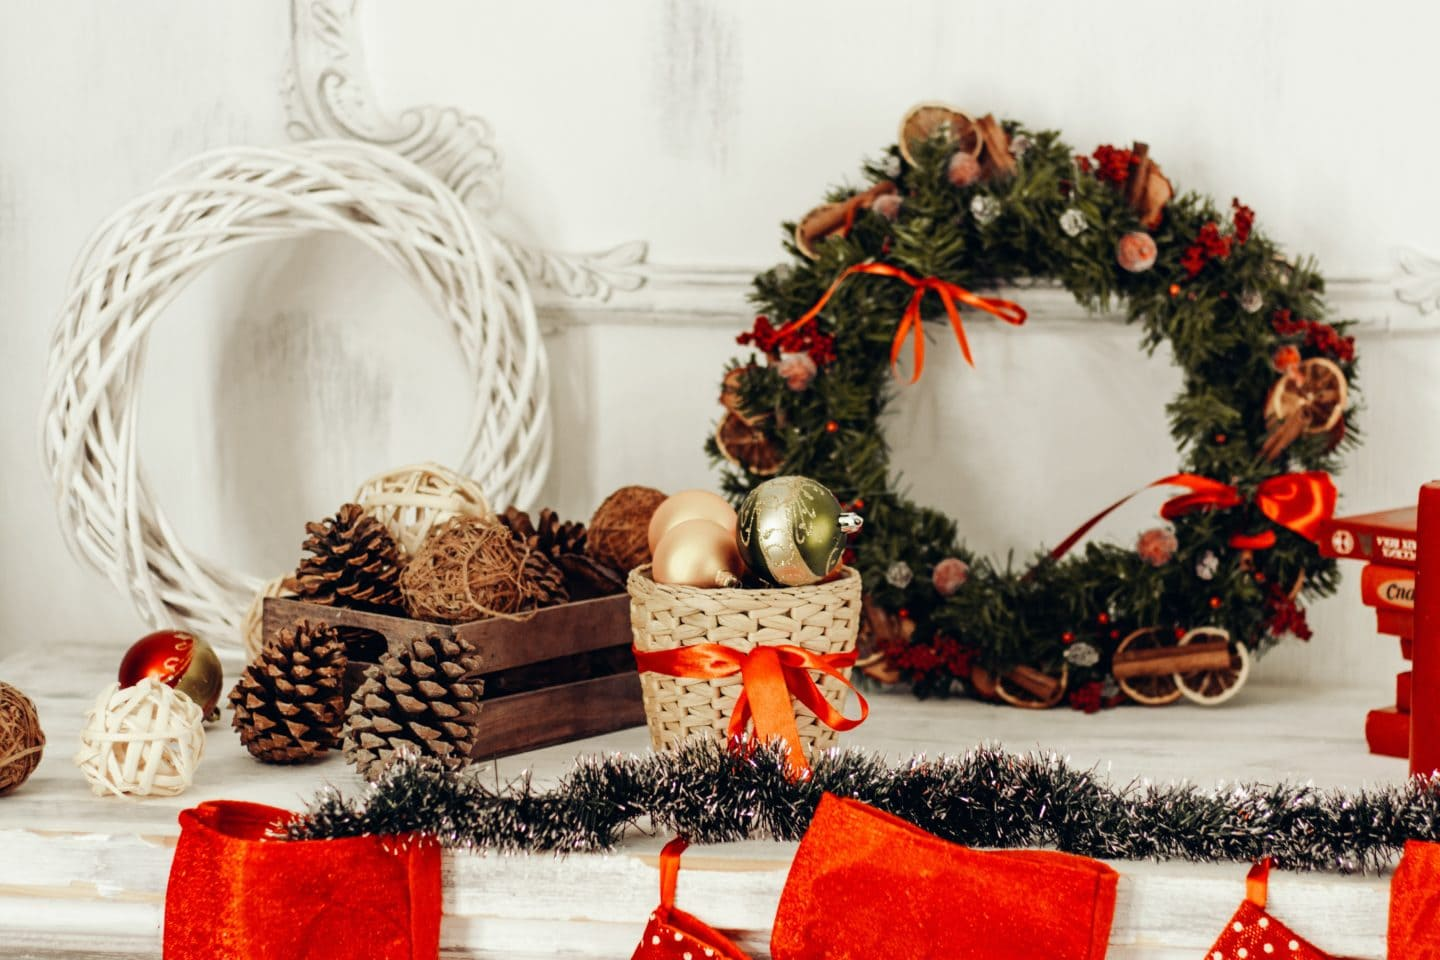 Holiday Gift Guide – Stocking Stuffers For Men